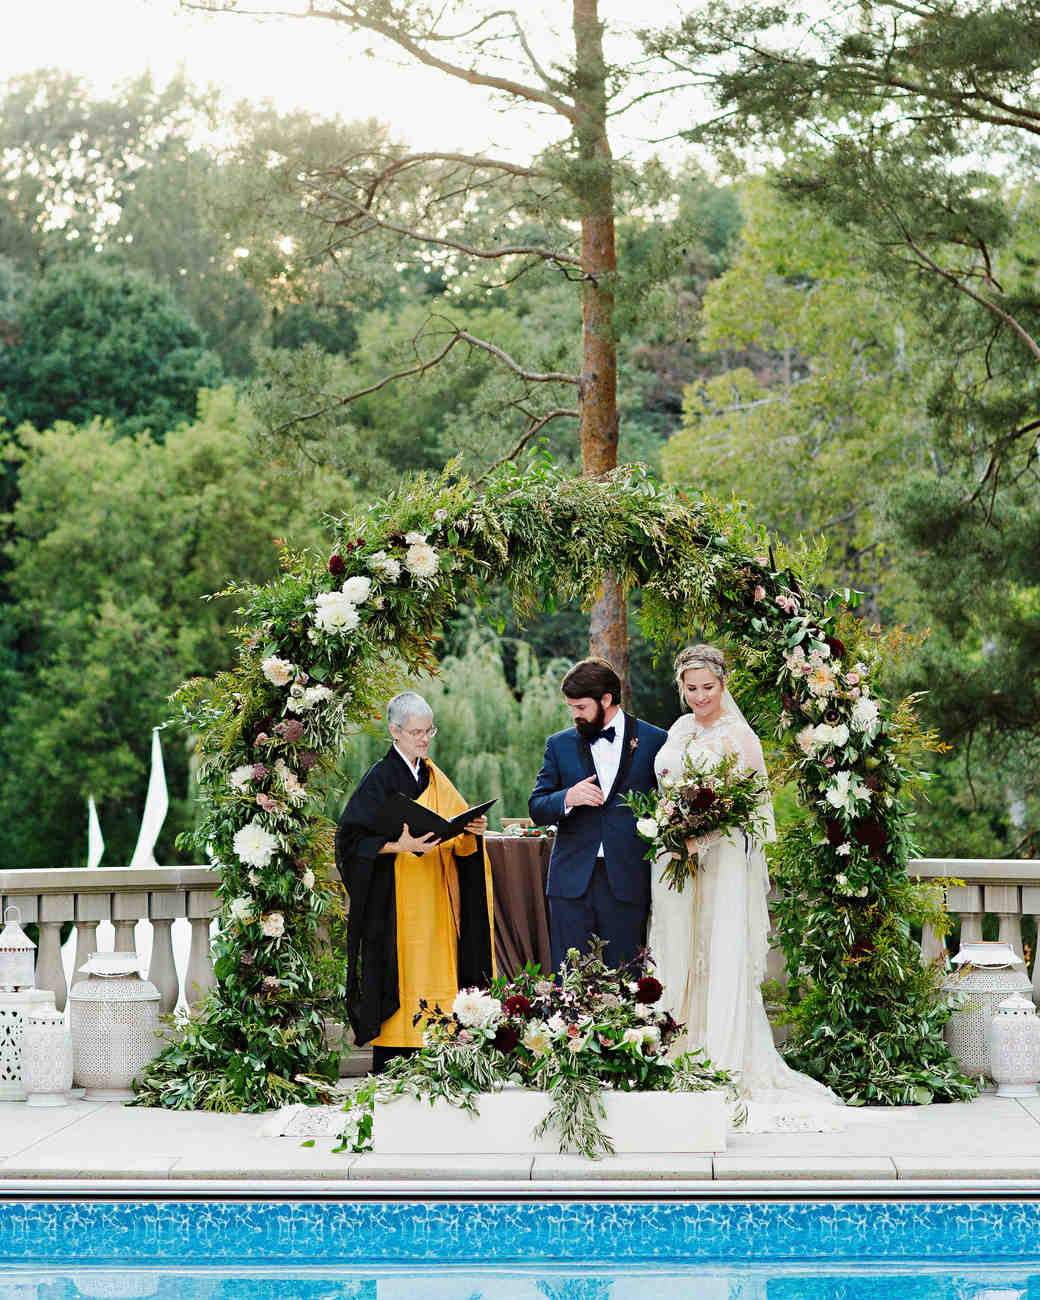 Lush Flowering Wedding Arch with Lots of Greenery